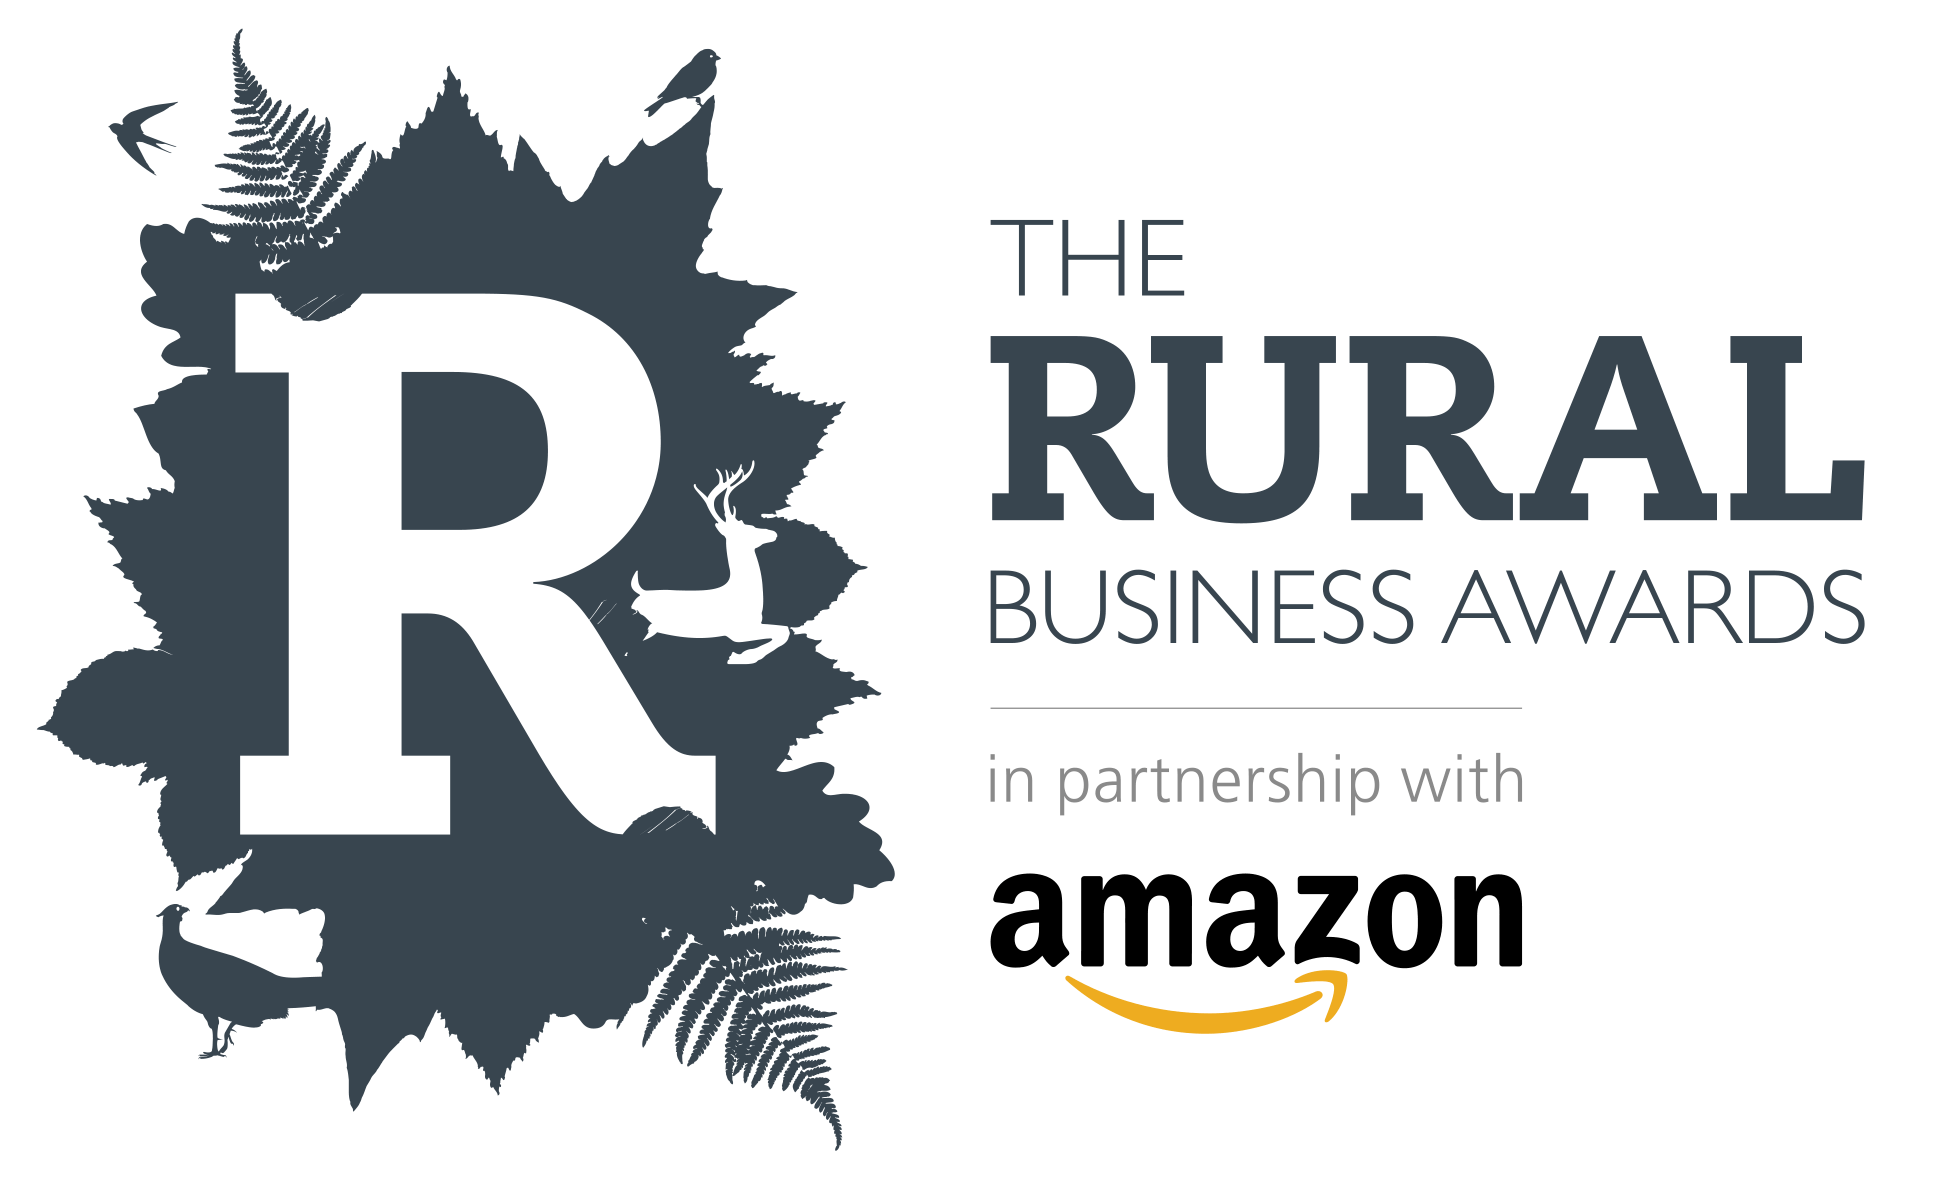 The Rural Business Awards sponsored by Amazon